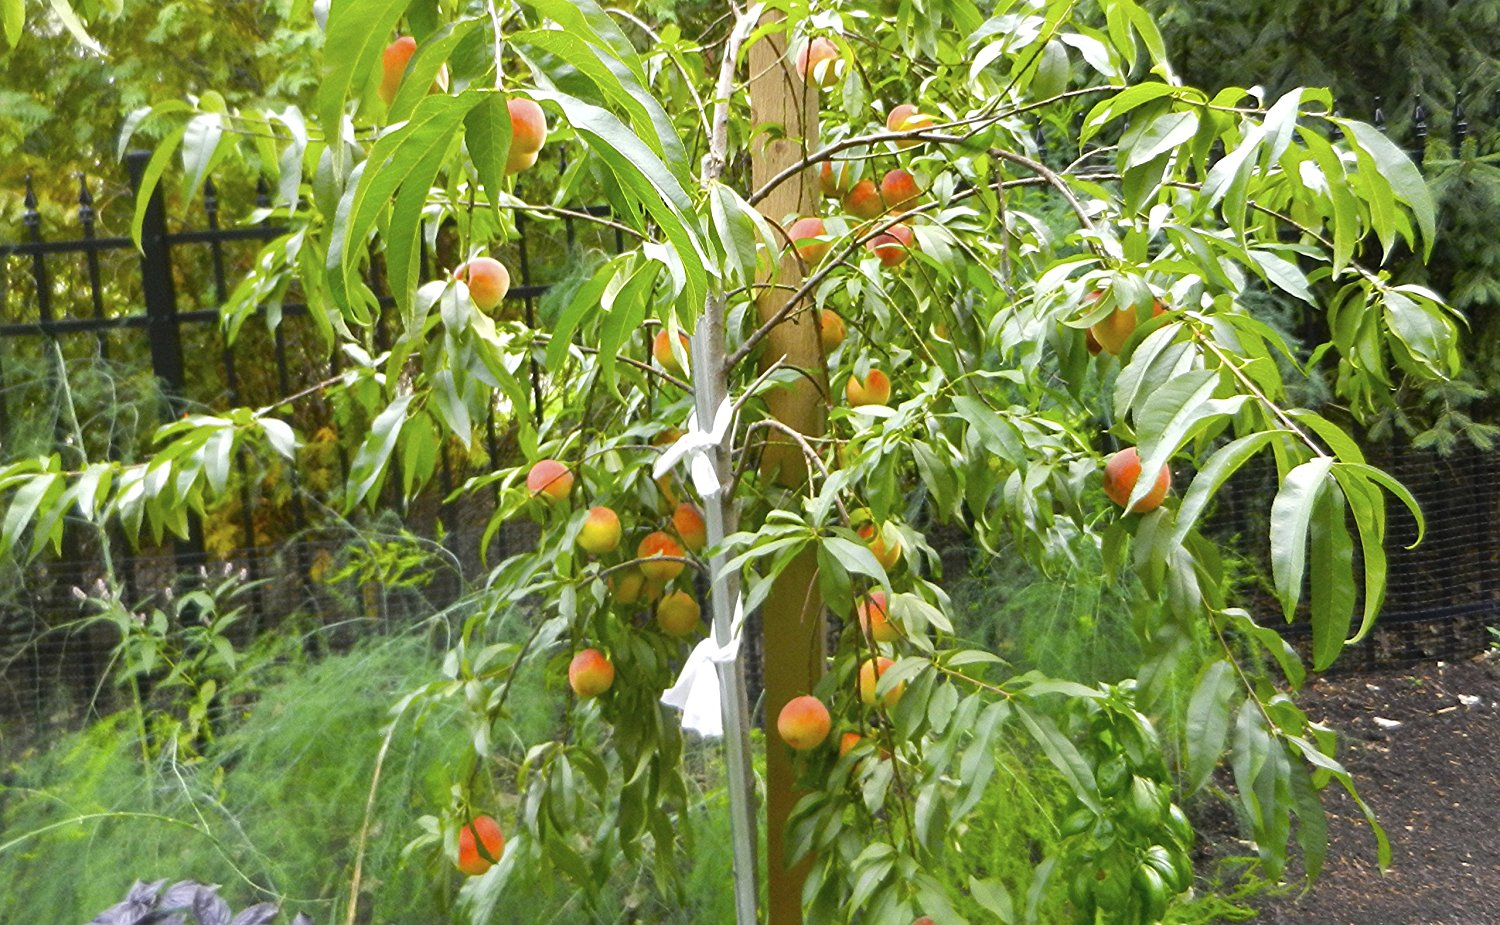 (5 in 1) PEACH Cocktail TREE - 5 different peaches on one plant (COCKTAIL Peach PLANT) Belle of Georgia,June gold, RED Haven, Hale haven, Elberta